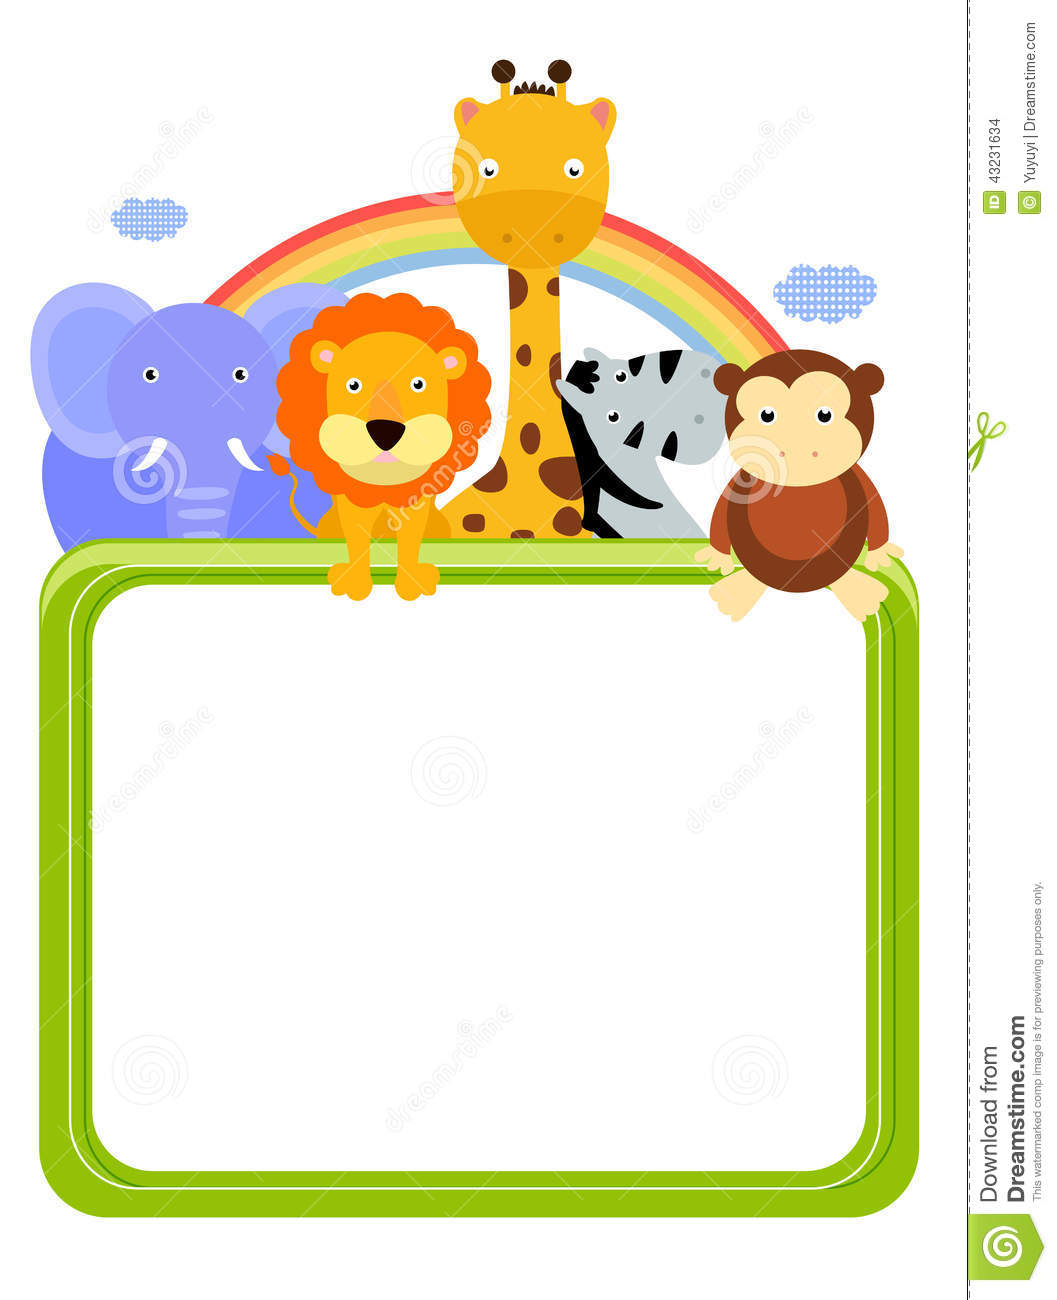 Zoo Animals And Frame Stock Vector - Image: 43231634